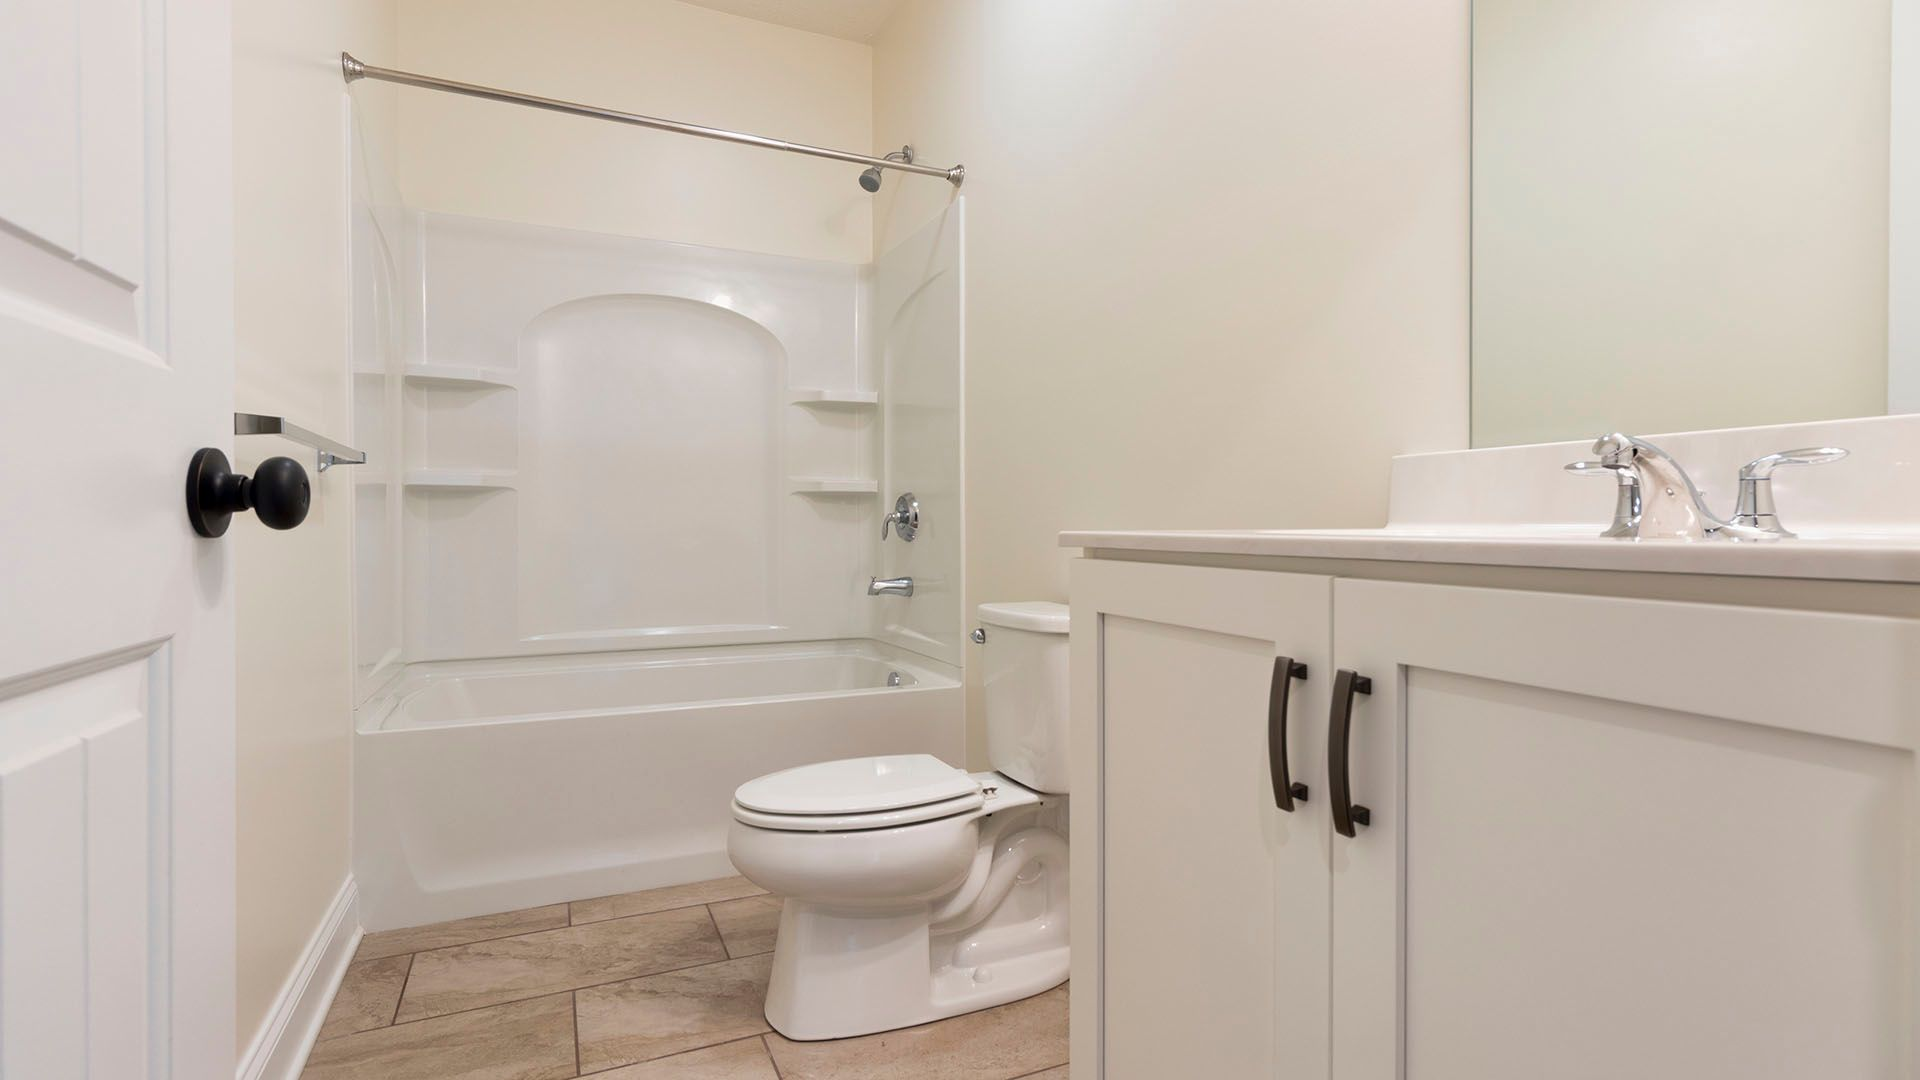 Bathroom featured in the Aspen By S & A Homes in State College, PA